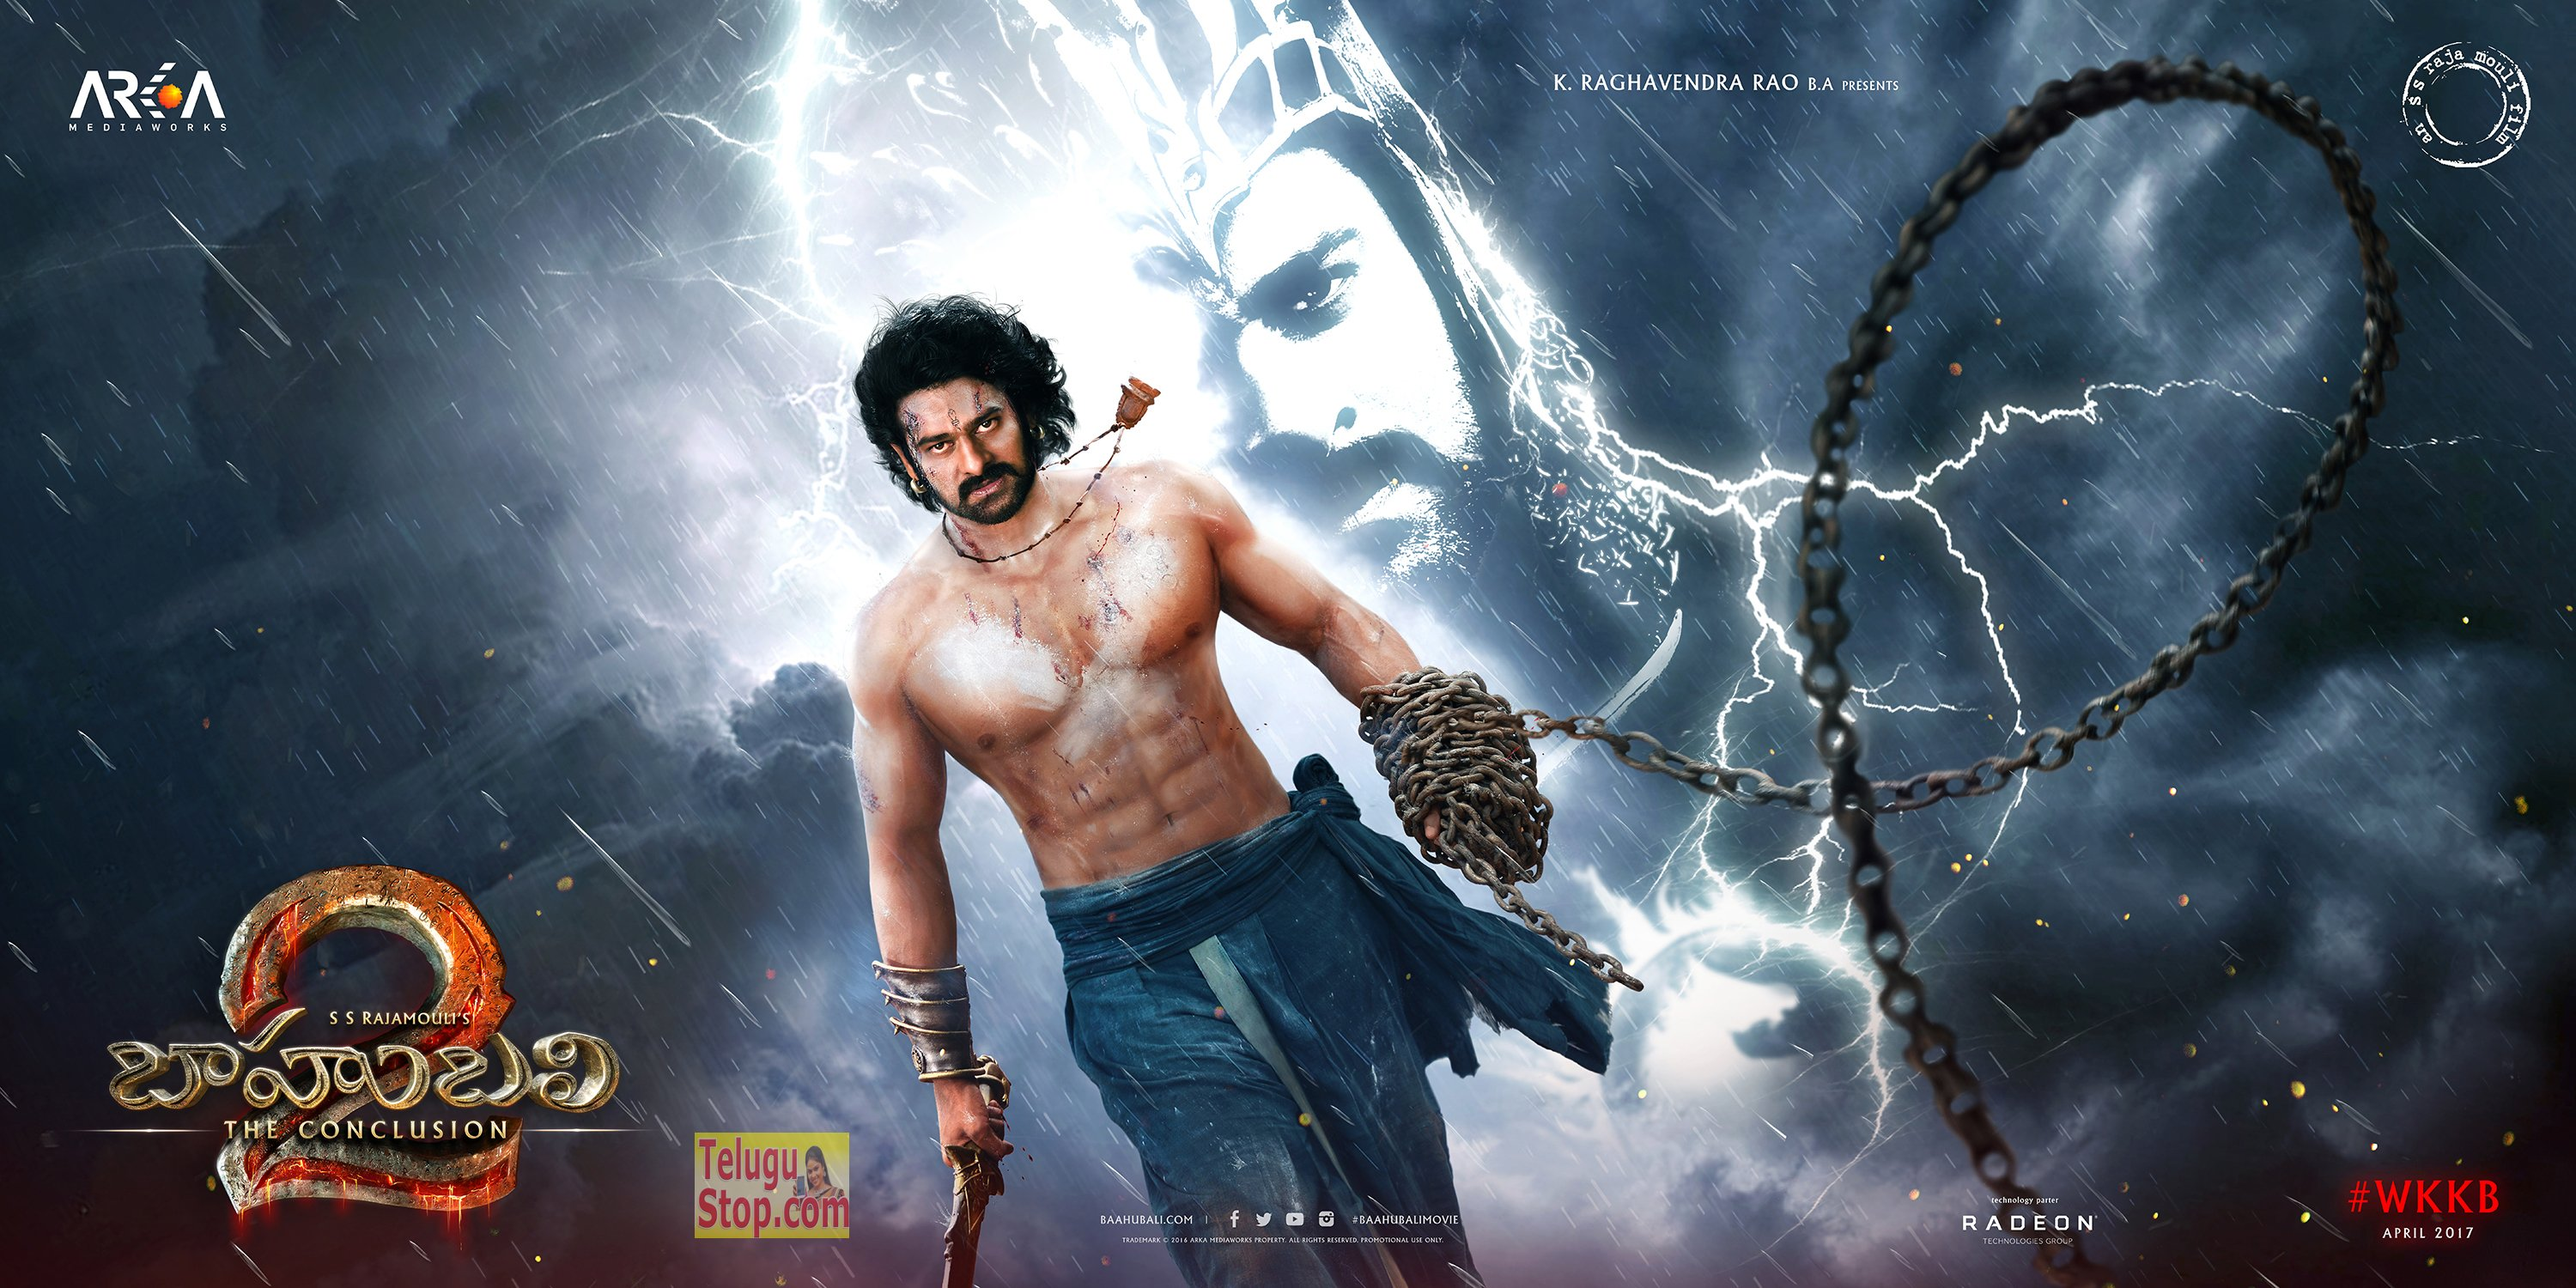 Baahubali 2 First look is here